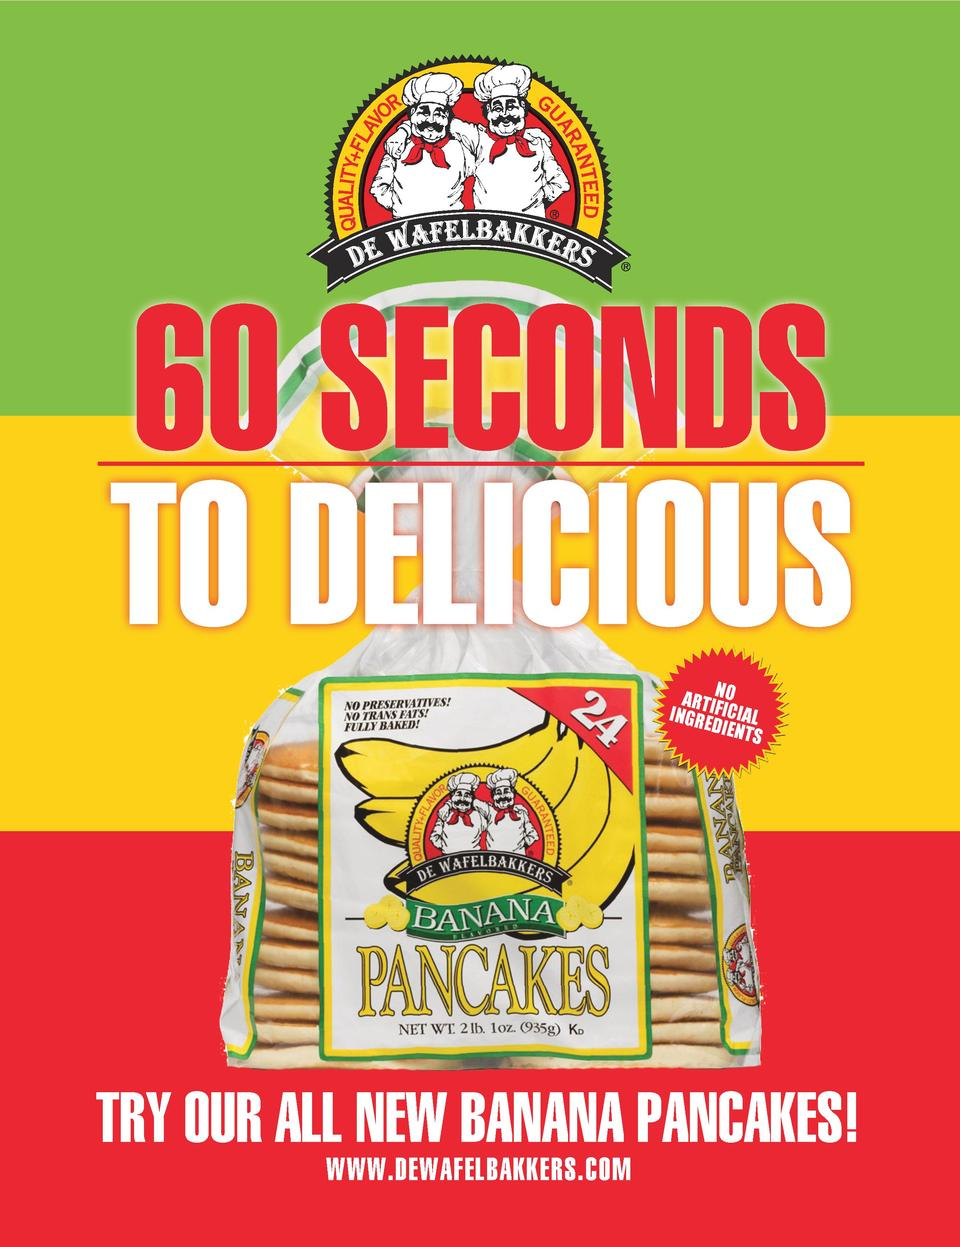 60 SECONDS TO DELICIOUS N ARTIF O INGRE ICIAL DIENT S  TRY OUR ALL NEW BANANA PANCAKES  WWW.DEWAFELBAKKERS.COM